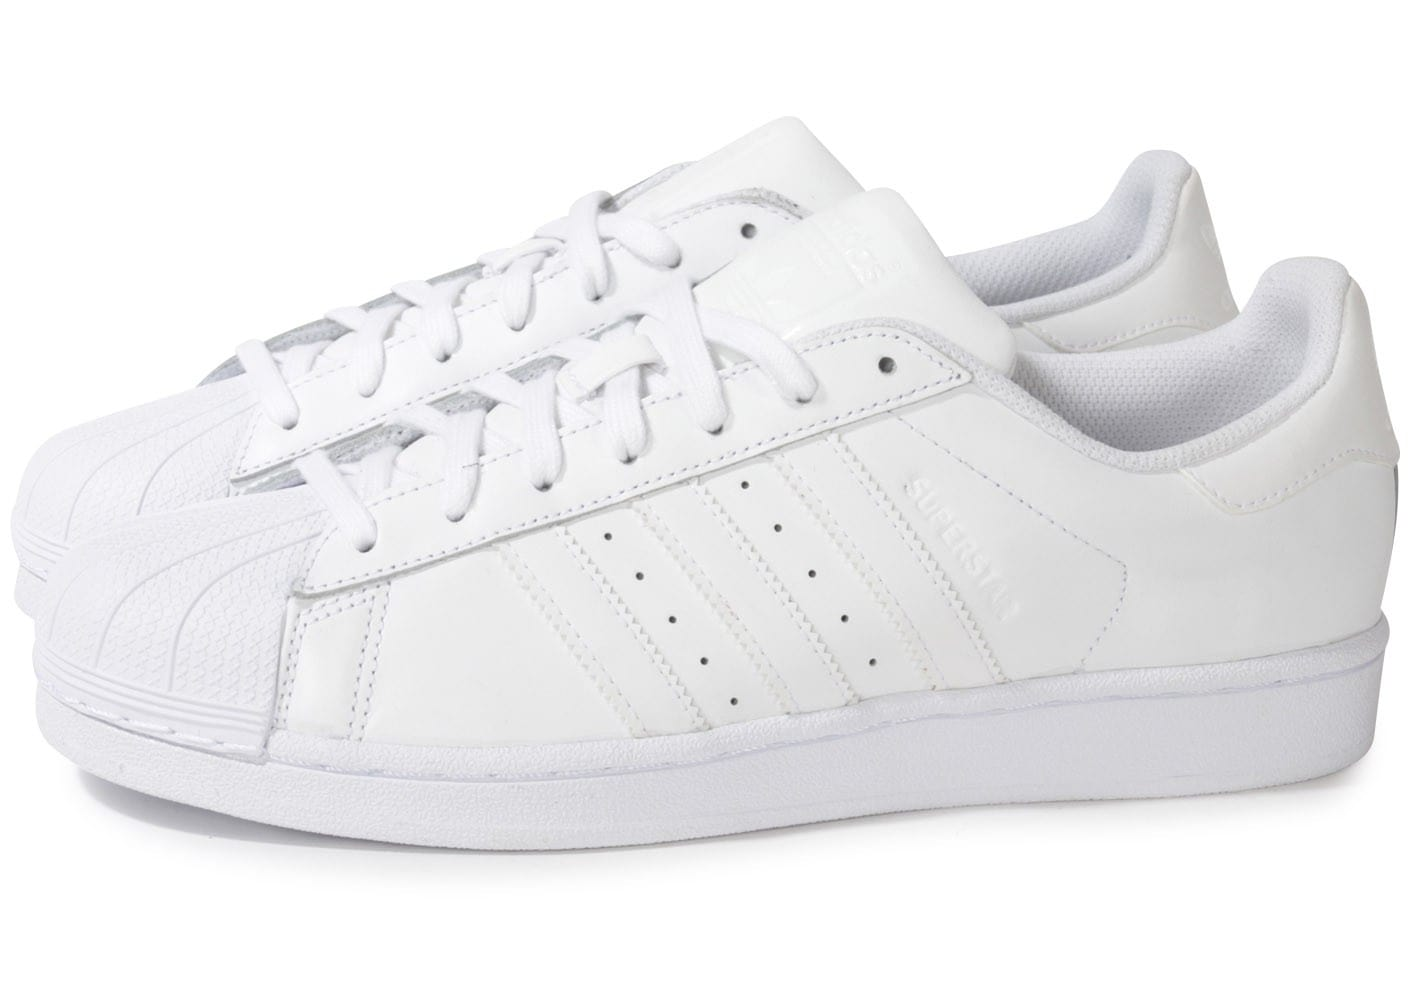 adidas superstar foundation blanche chaussures homme chausport. Black Bedroom Furniture Sets. Home Design Ideas